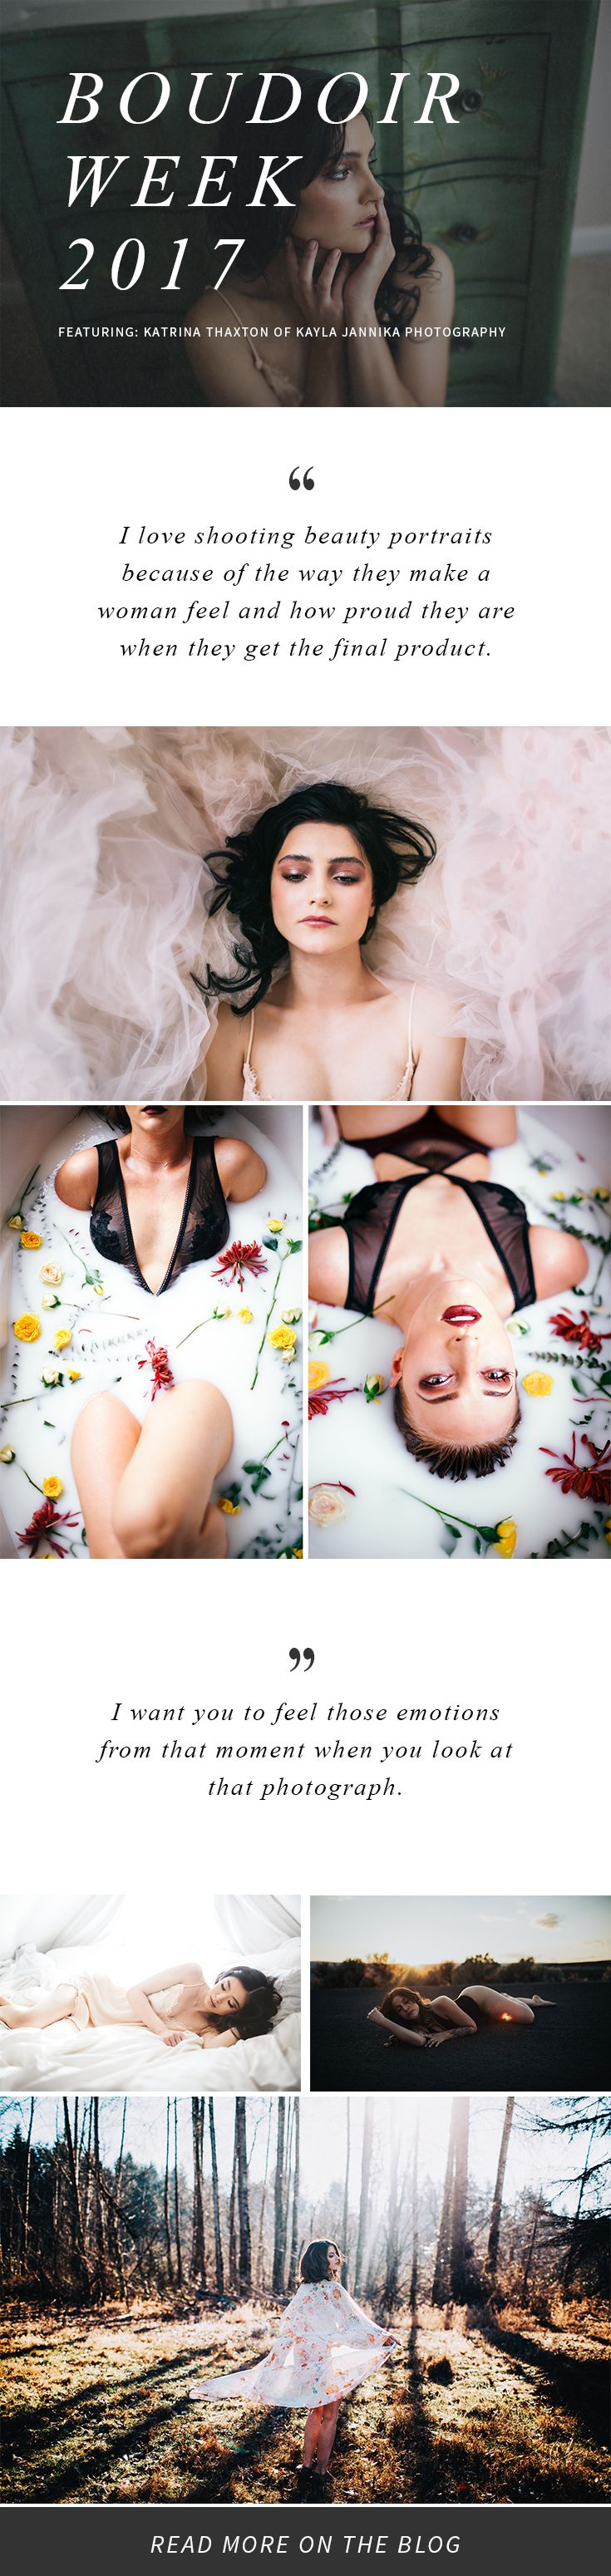 For boudoir photographers: learn from the best in the creative industry with Boudoir Week 2017! Katrina Thaxton of Kayla Jannika Photography is on the blog sharing her love of beauty portraits and advice for new photographers.